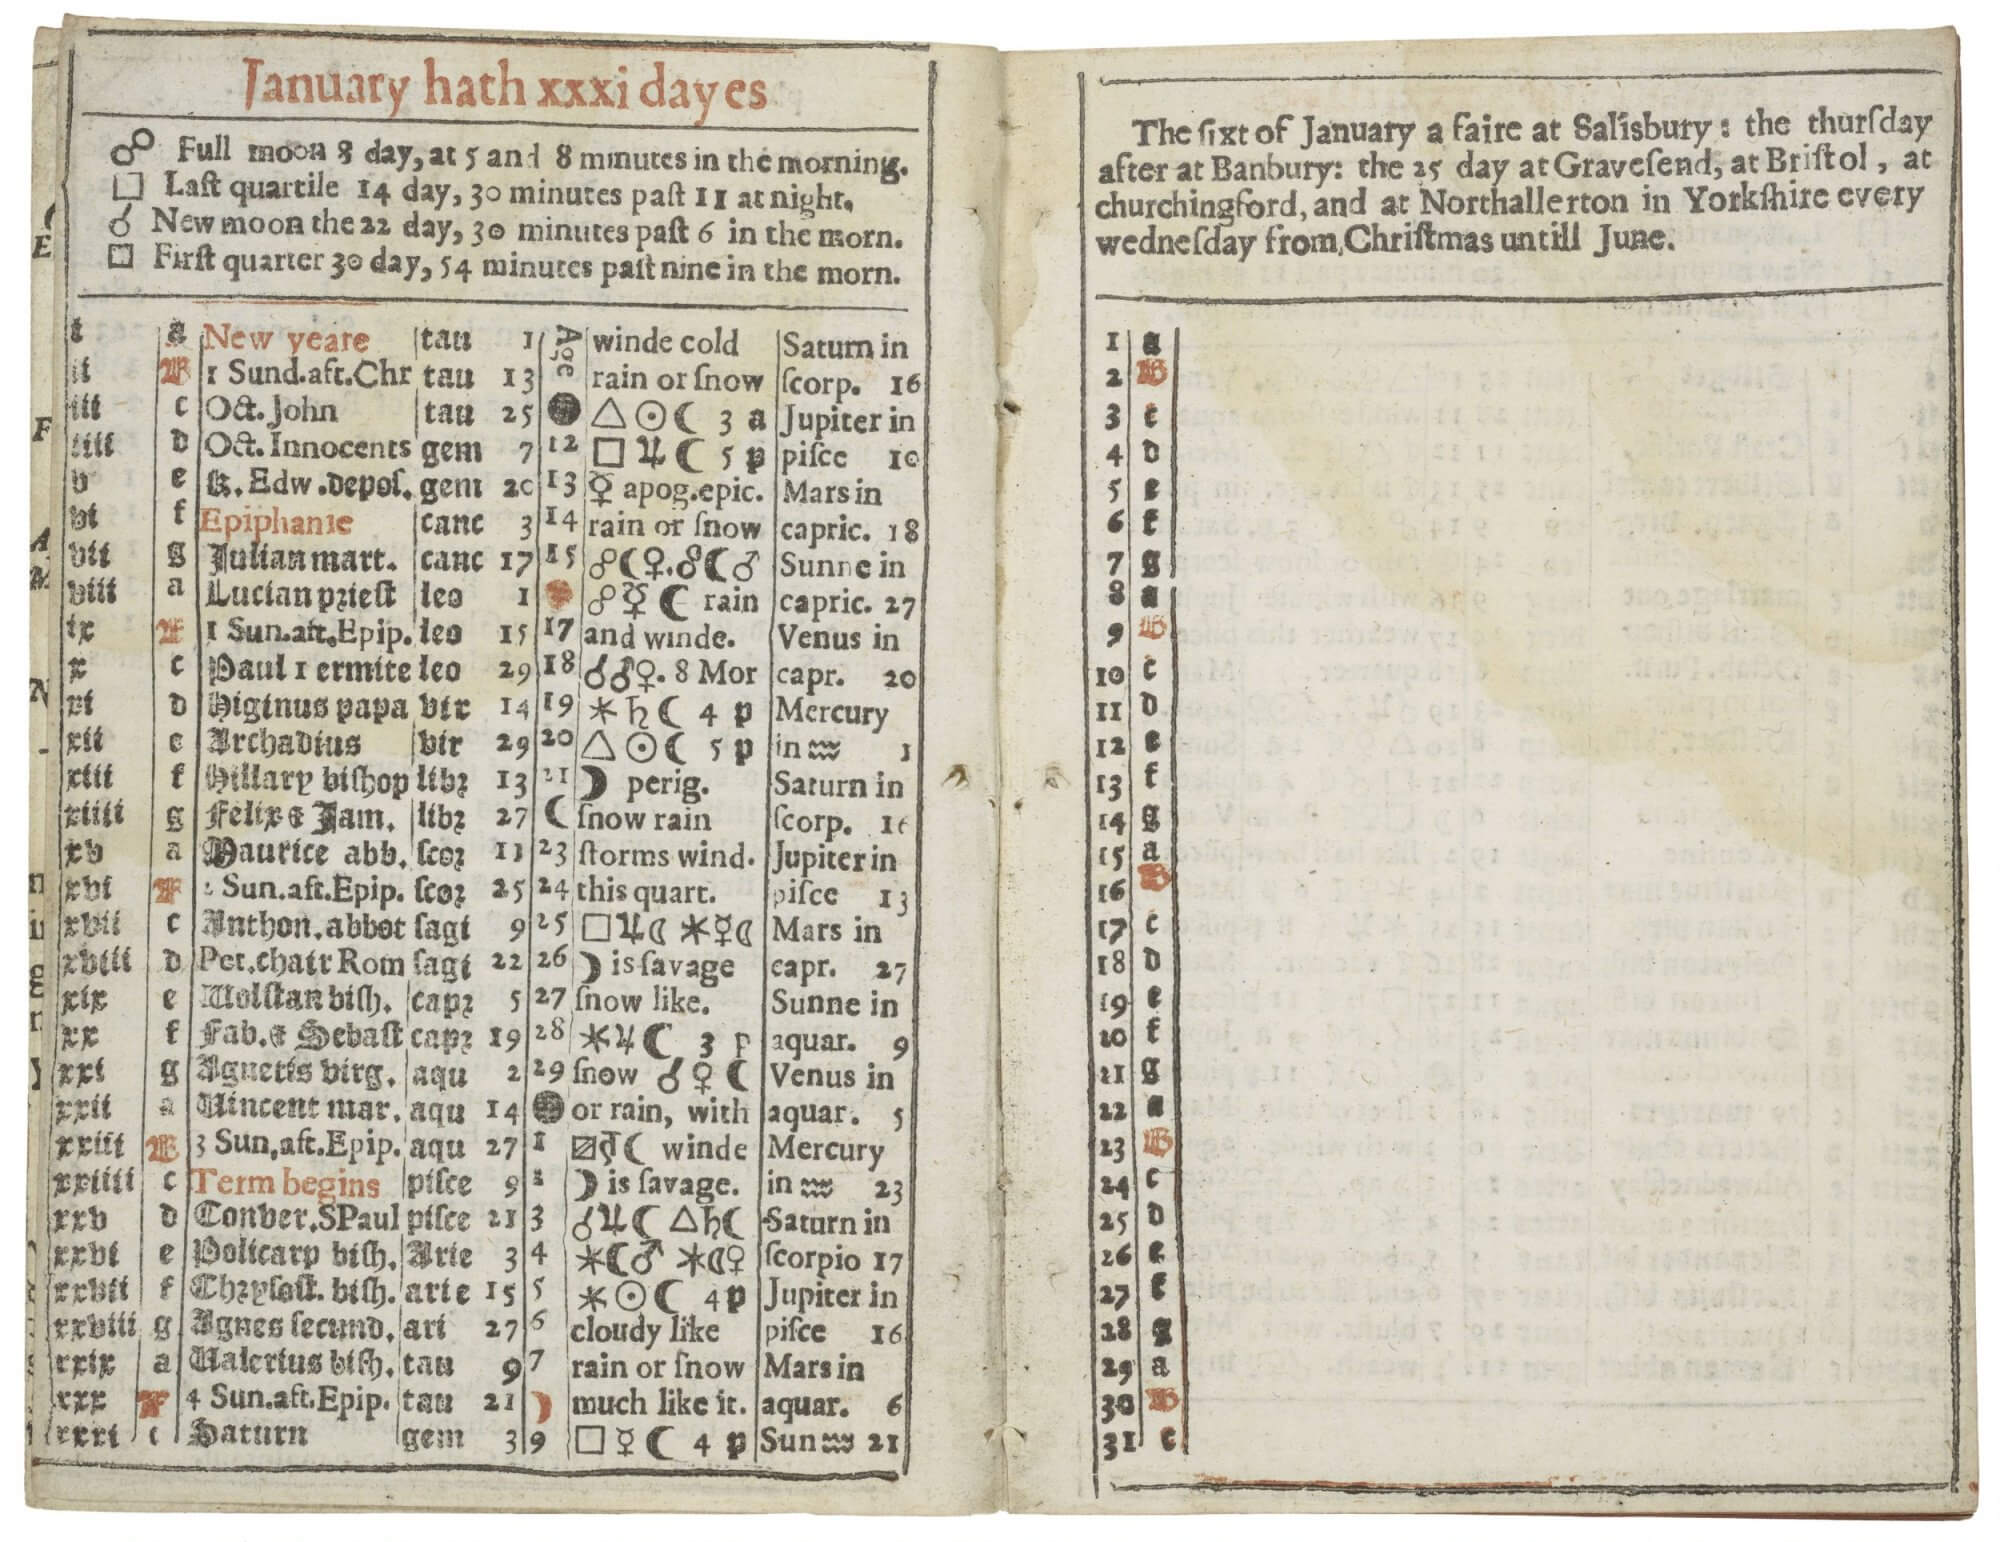 This almanac shows a typical combination of information: dates of the month, the dominical number, saints days and other festivals, the positions of various astrological features, and space for the user to write their own notes. But this almanac is atypical in that it survived---huge numbers of almanacs were printed, particularly in the 17th century, but most were discarded at the end of the year and lost to posterity.